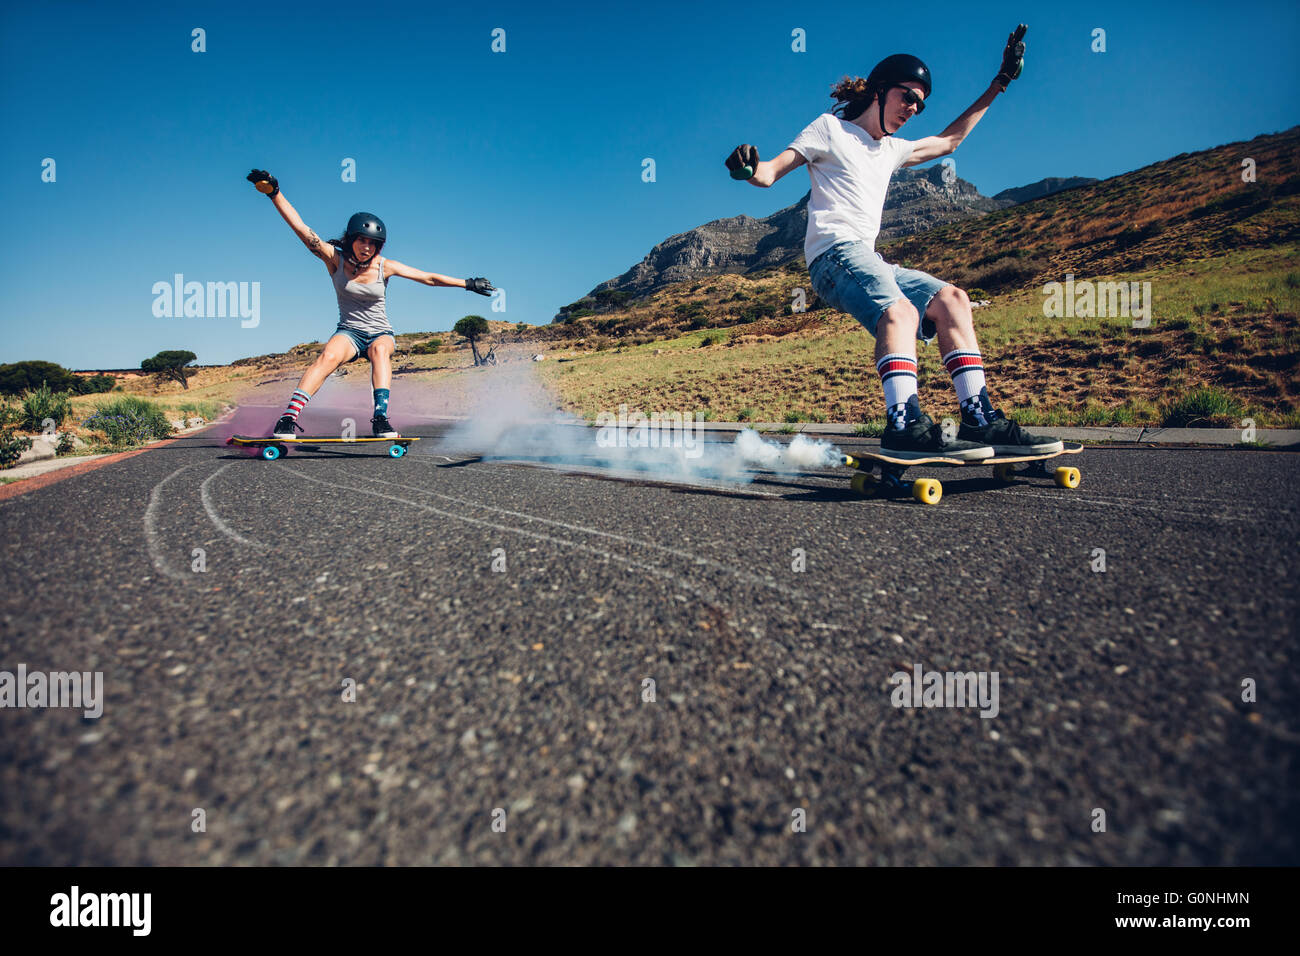 Full length shot of young man and woman outdoors longboarding down the road. Skate boards with smoke grenade. People - Stock Image